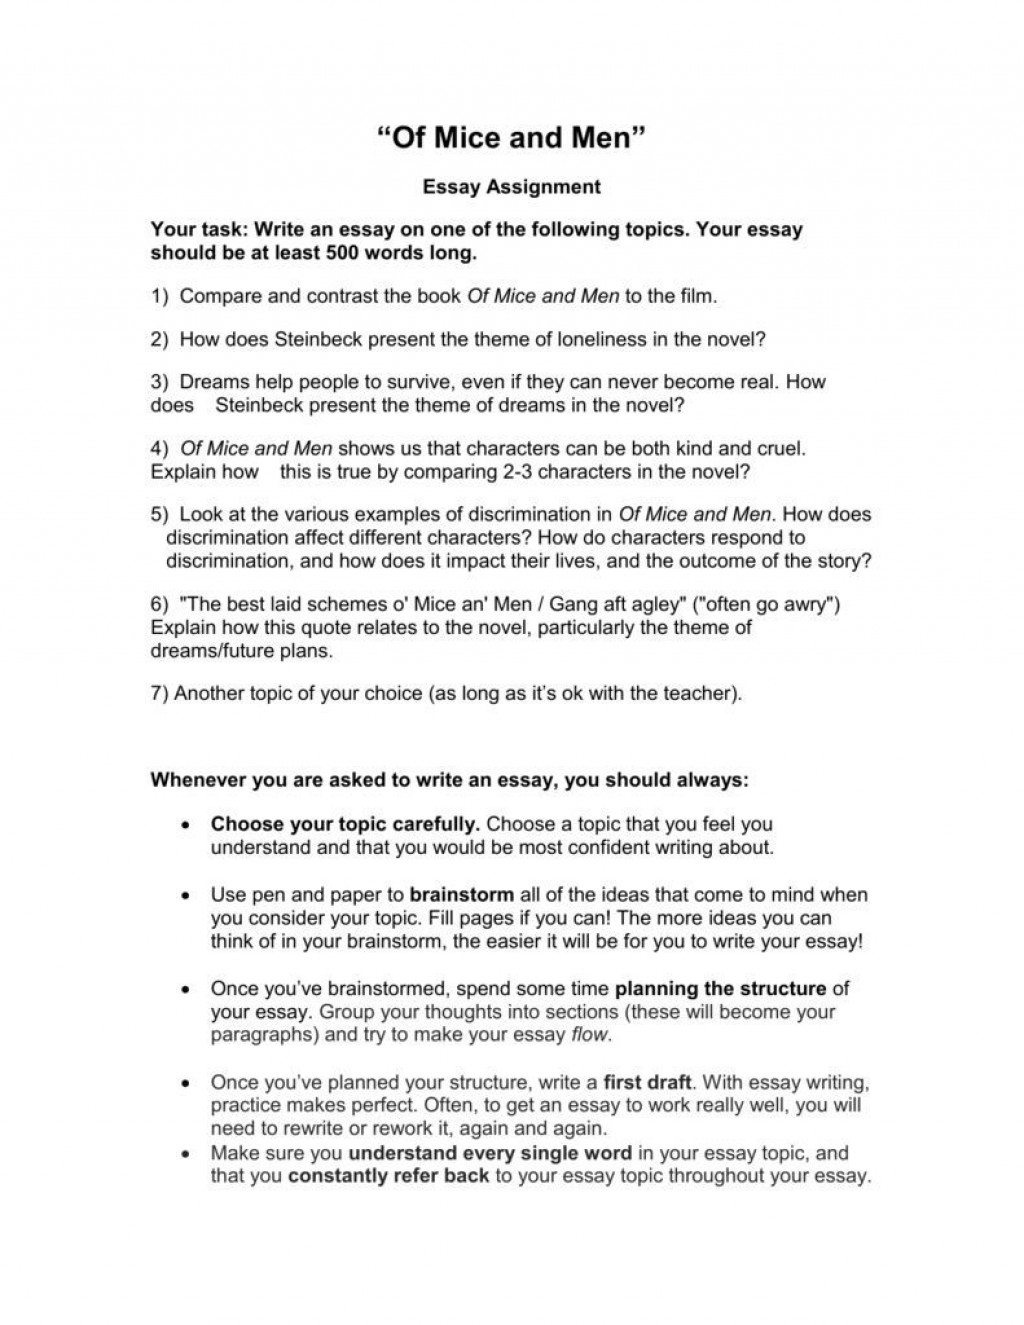 007 Magnificent Of Mice And Men Essay Photo  Prompt TopicLarge